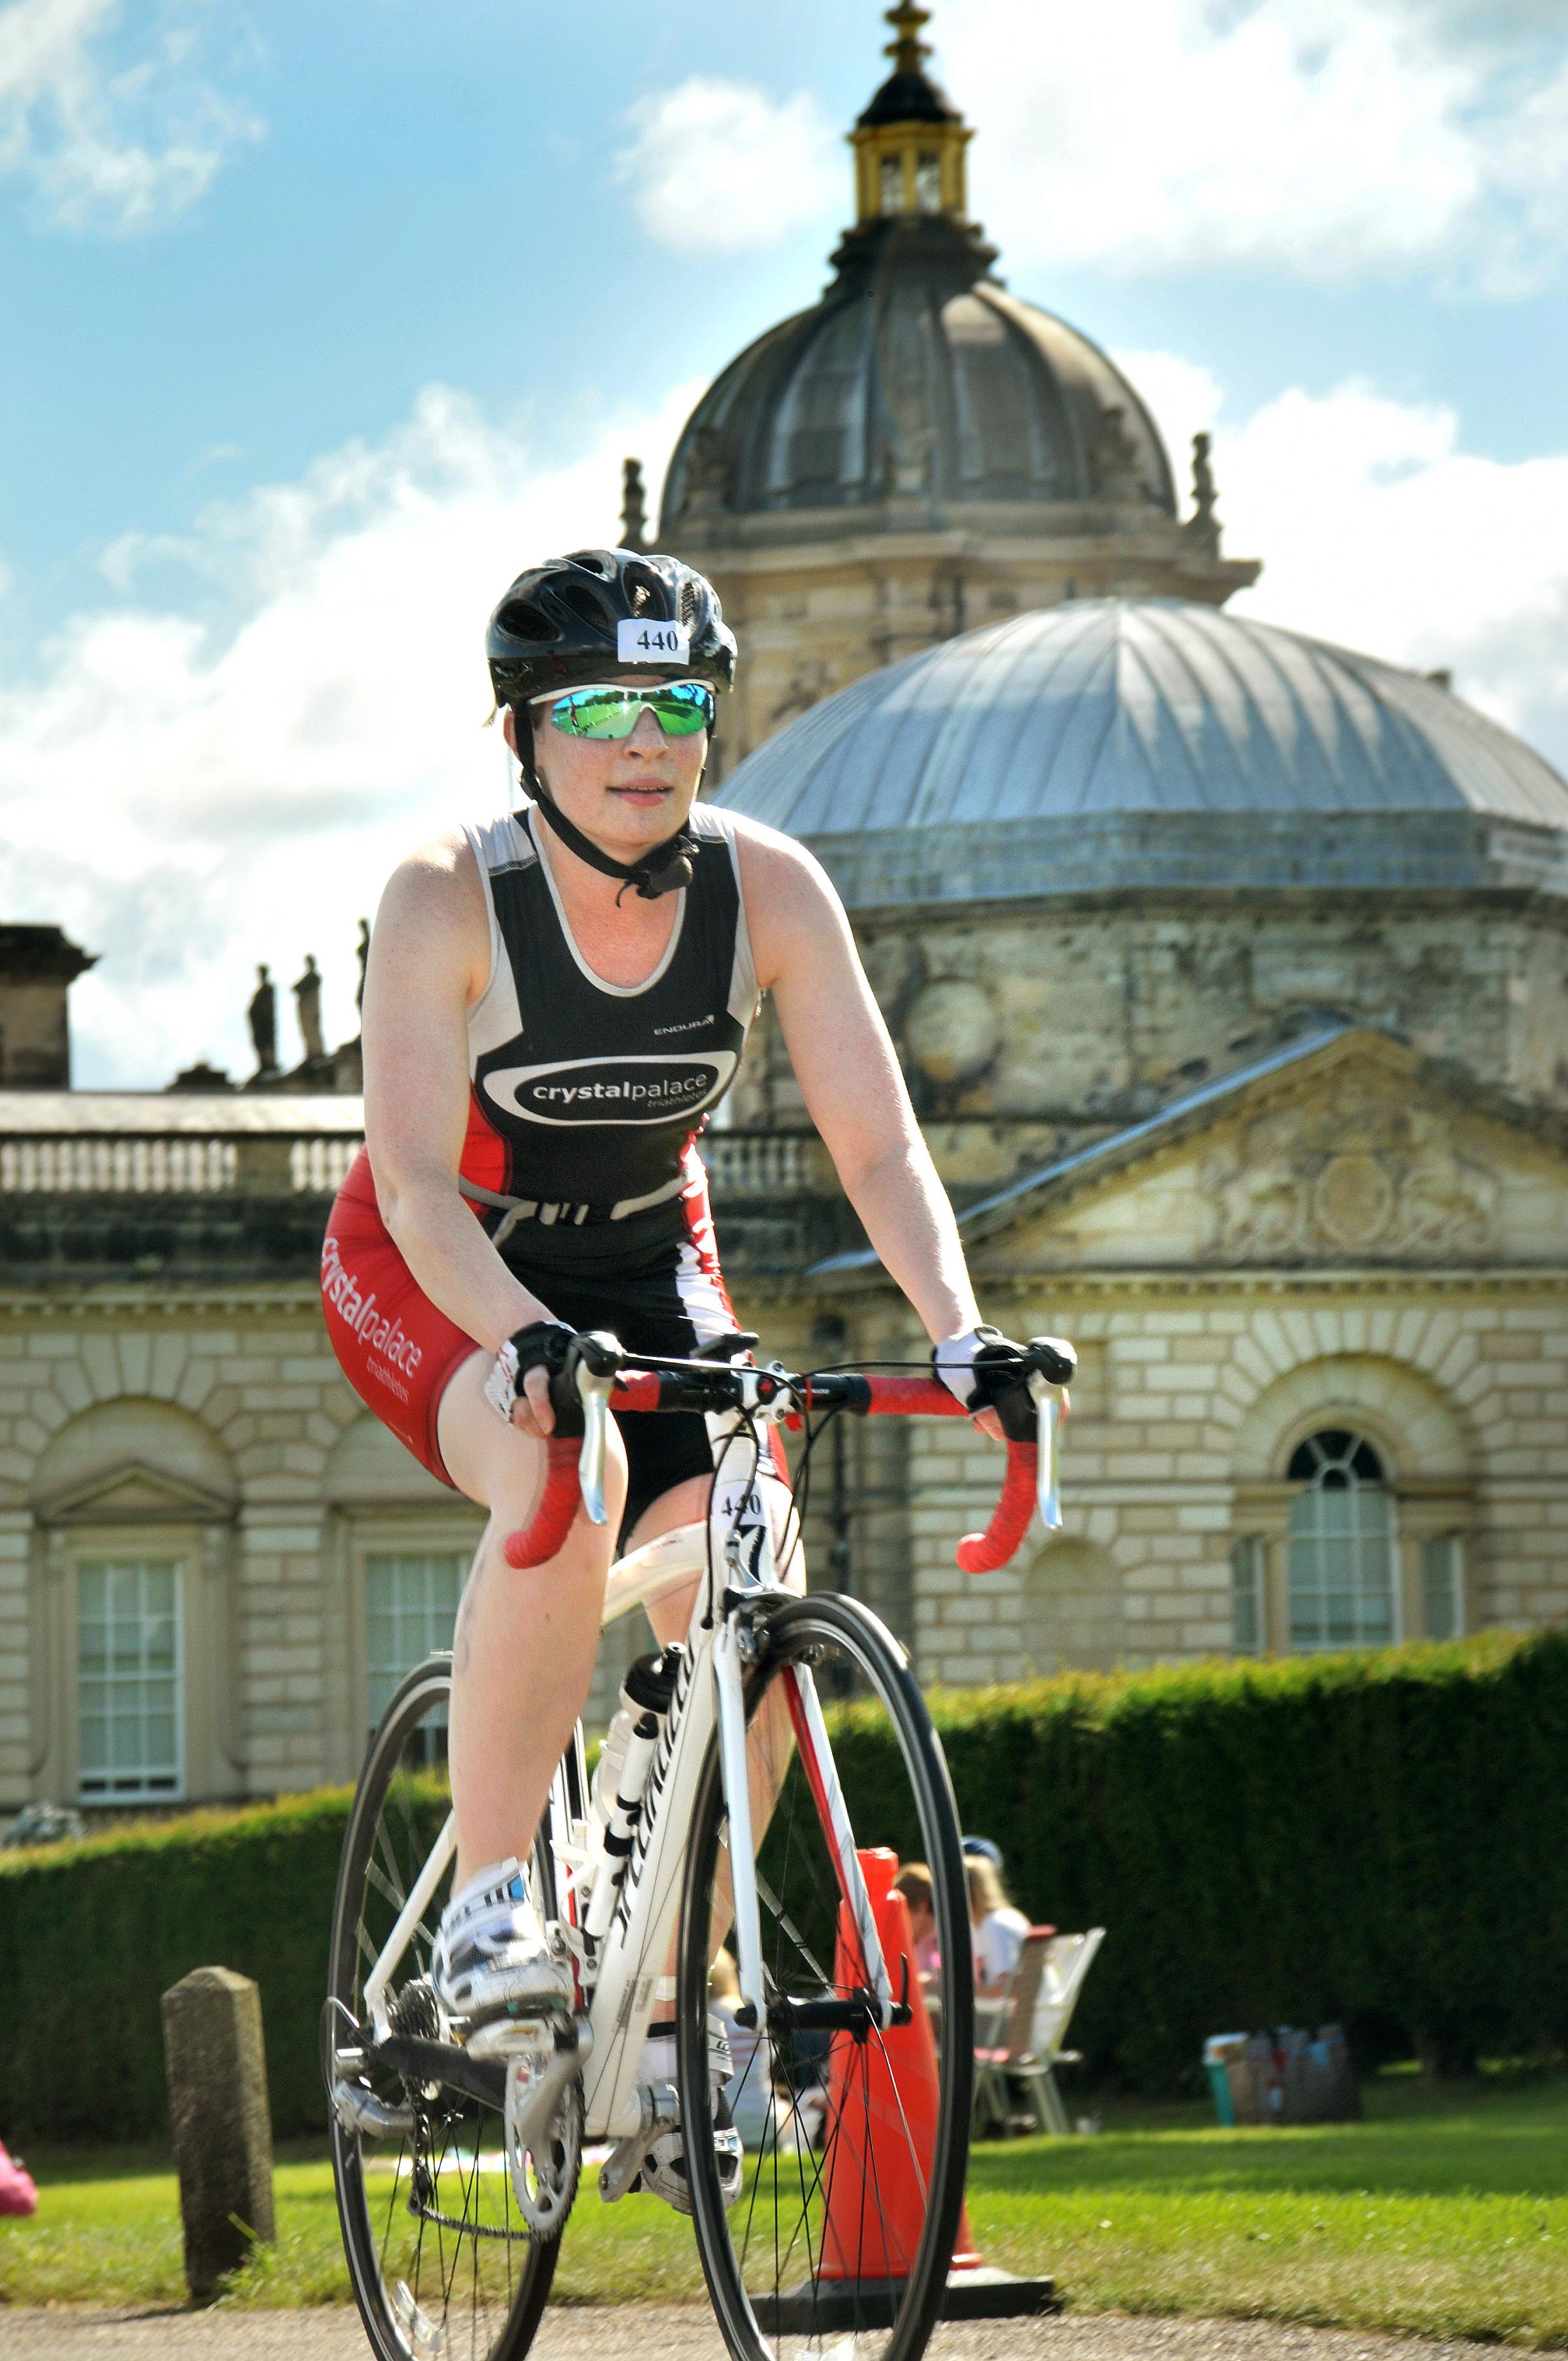 Castle Howard Triathlon attracts 2,000 competitors